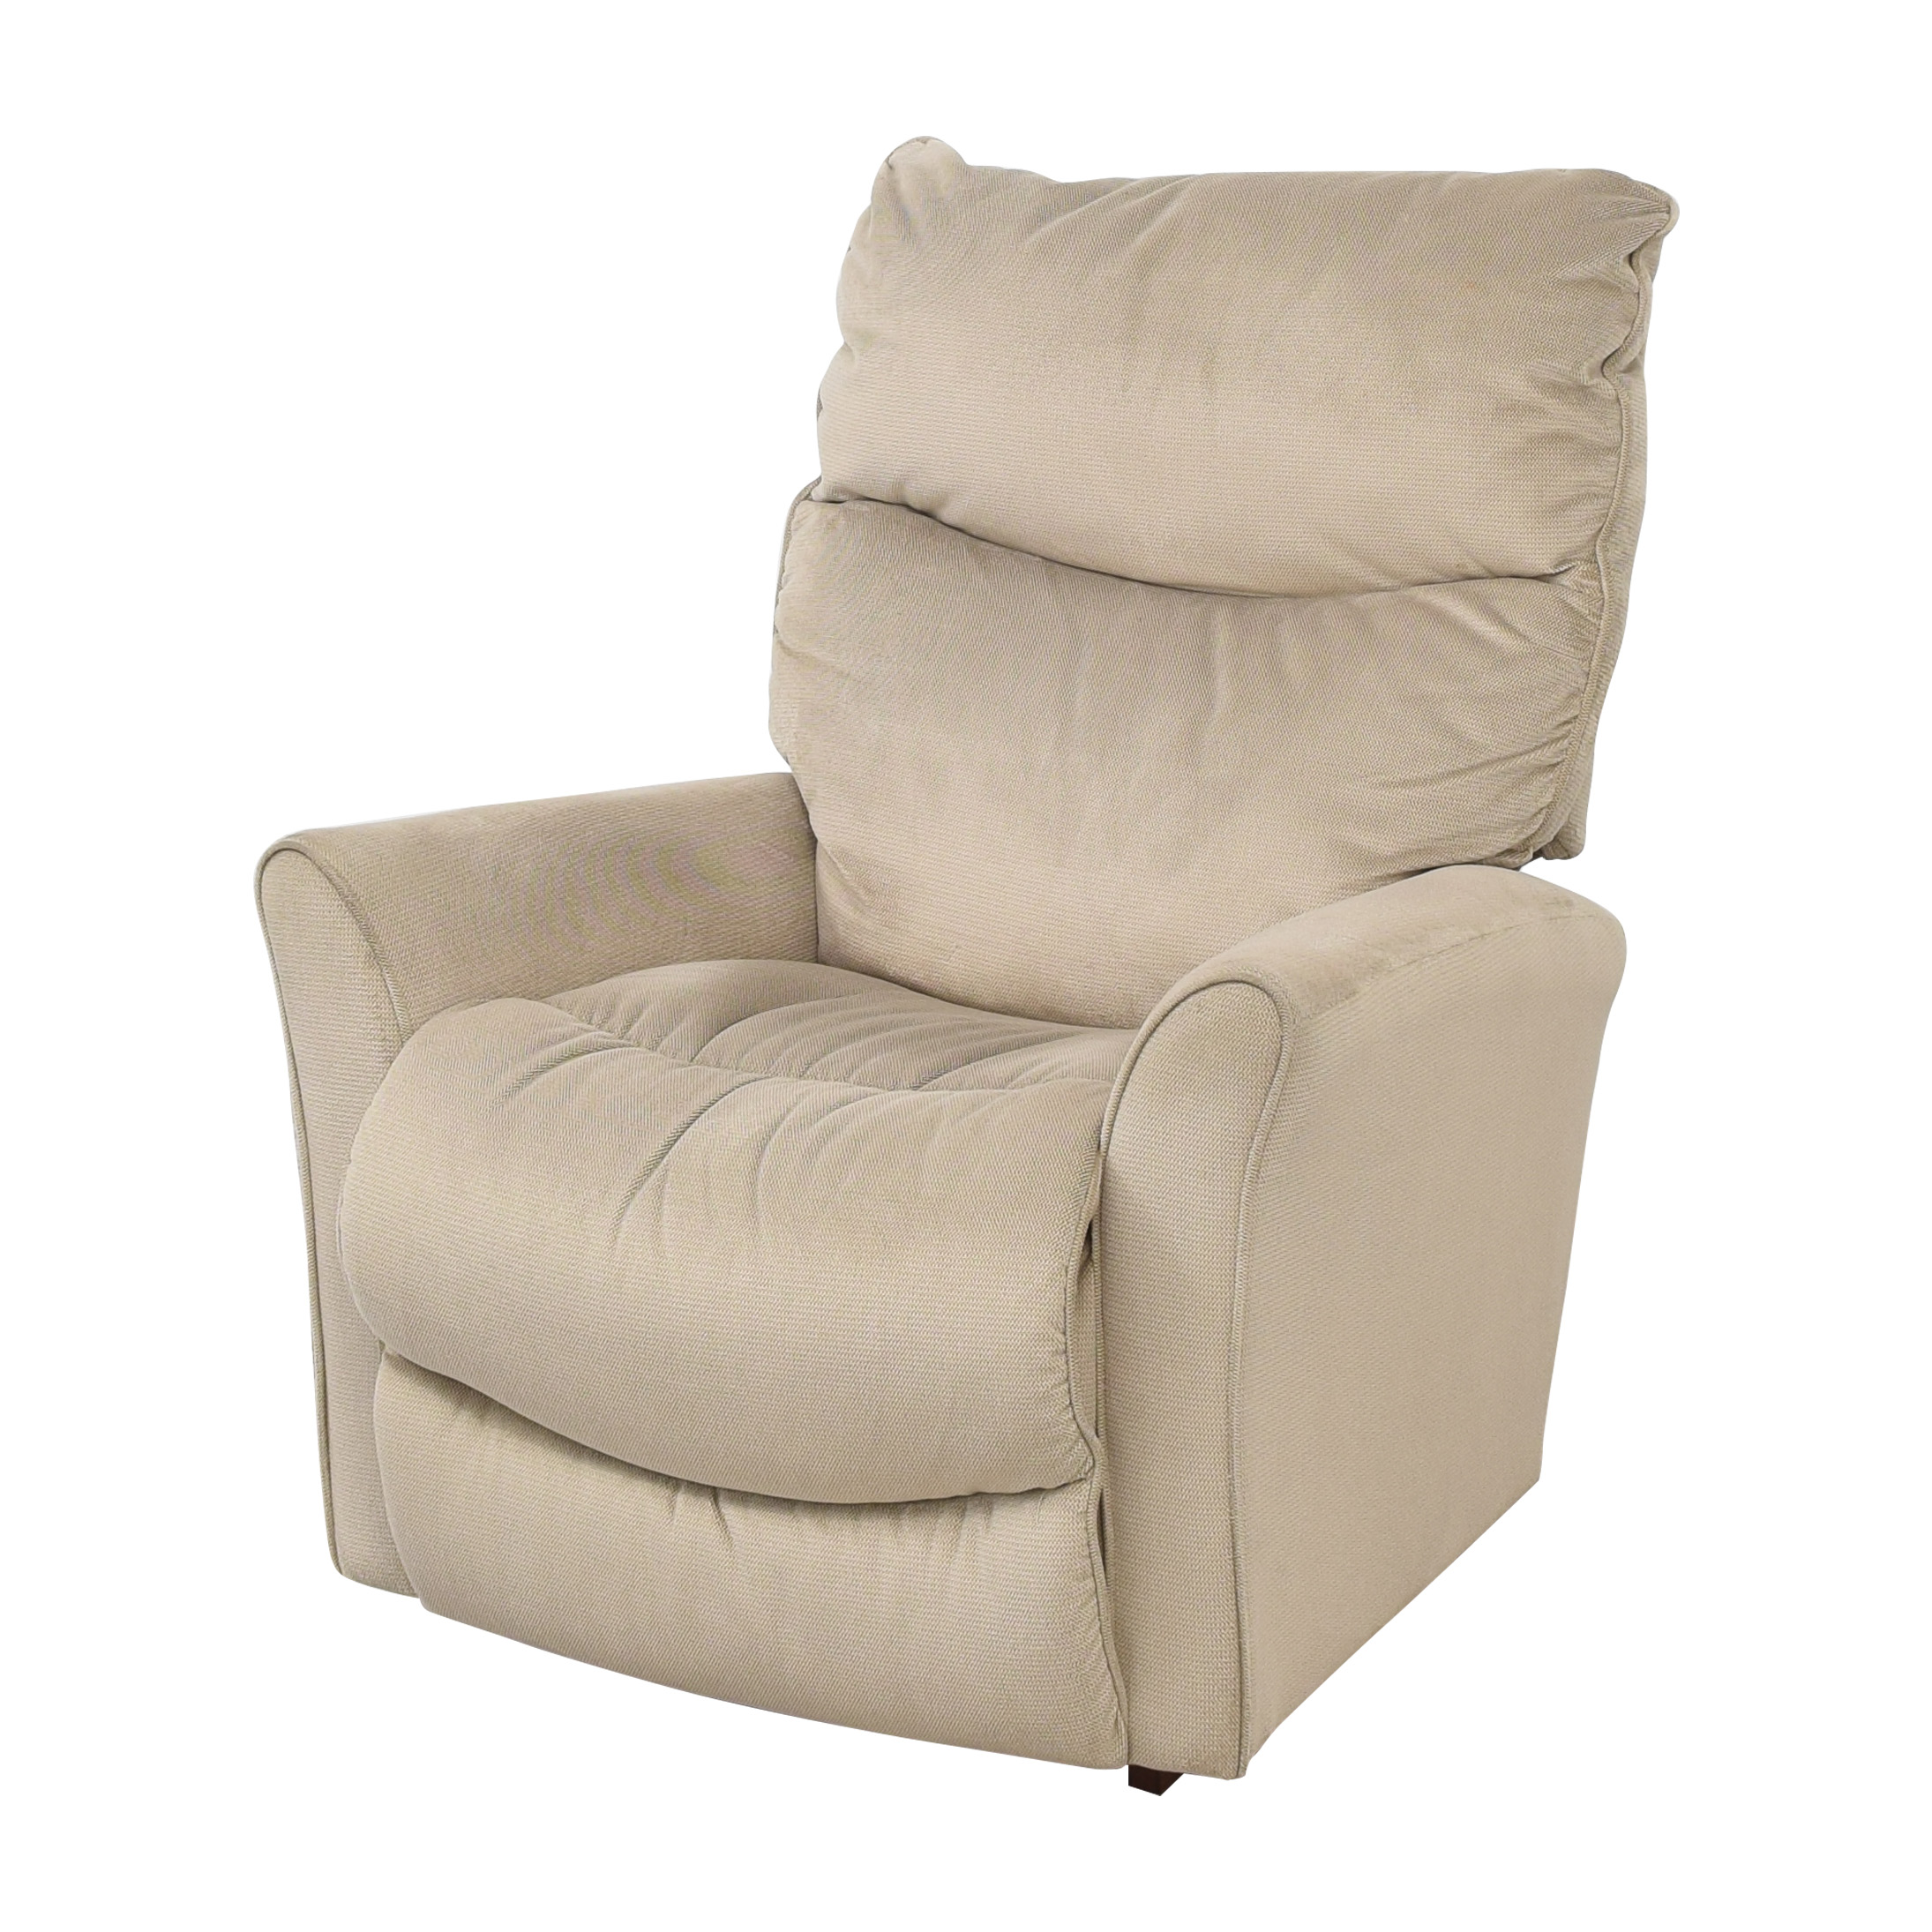 La-Z-Boy Rowan Power Rocking Recliner / Recliners